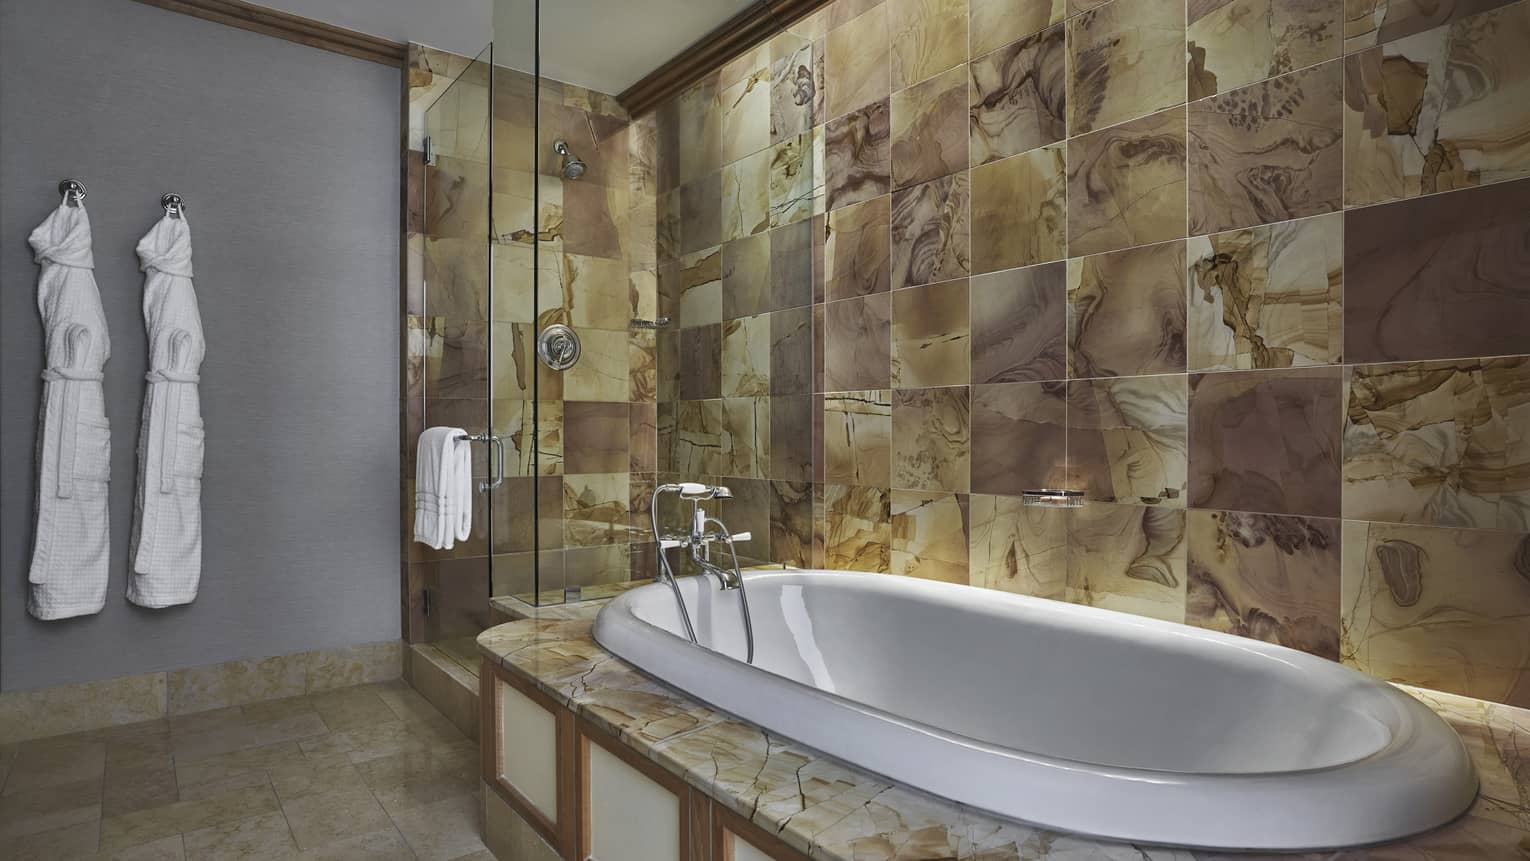 Tiled bathroom with a soaking tub and separate glass-enclosed shower